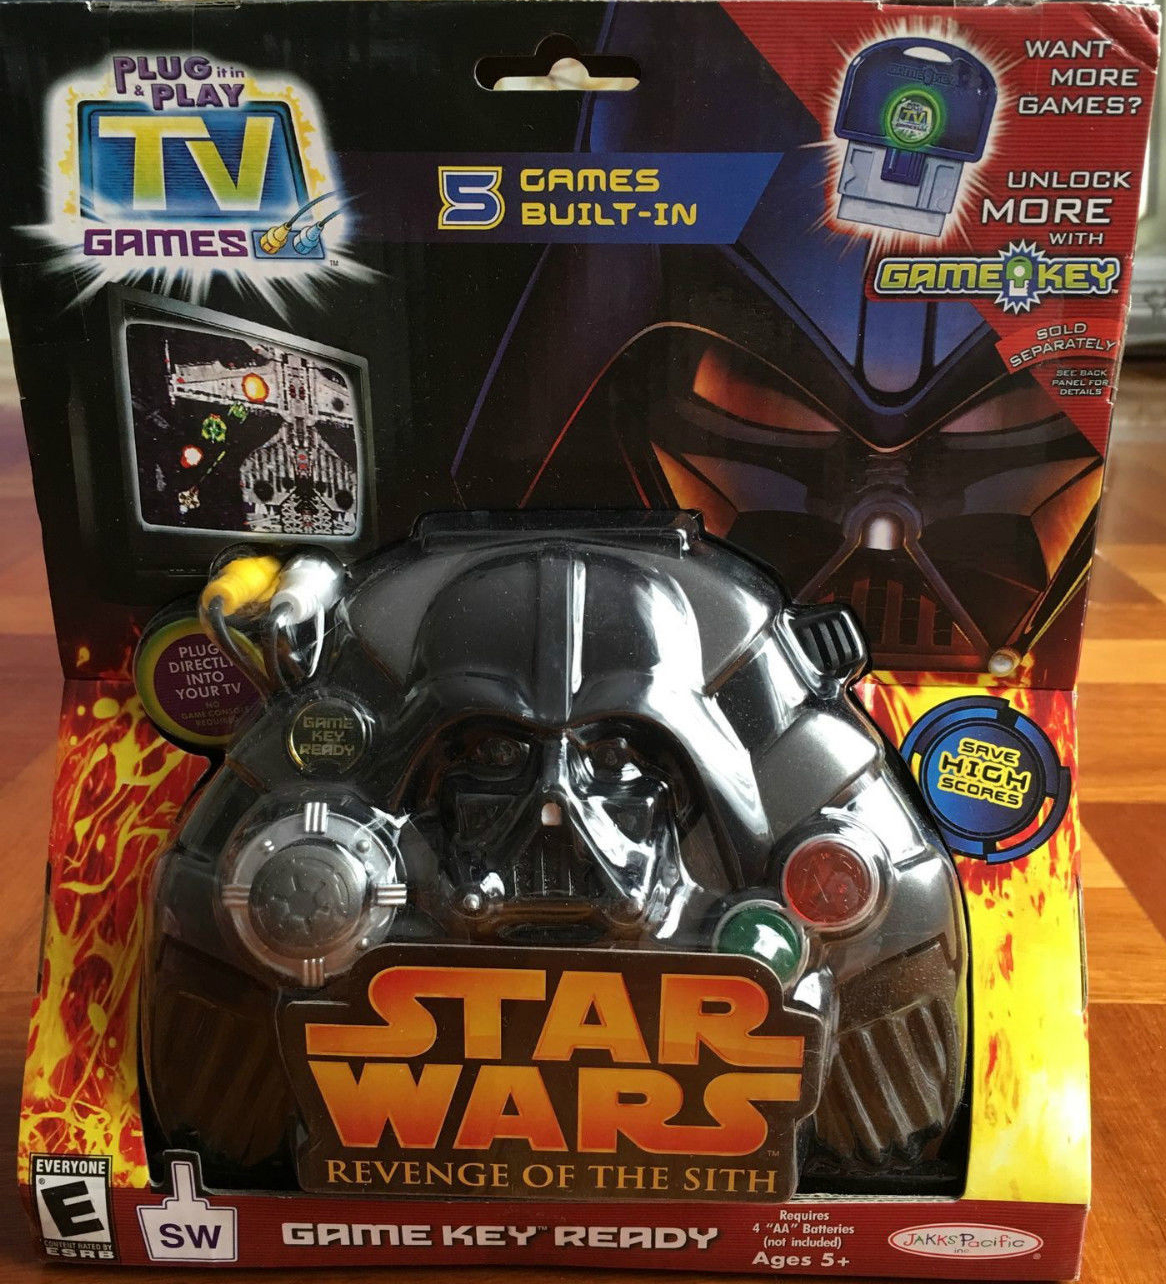 Plug it in and Play: Star Wars Episode III: Revenge of the Sith